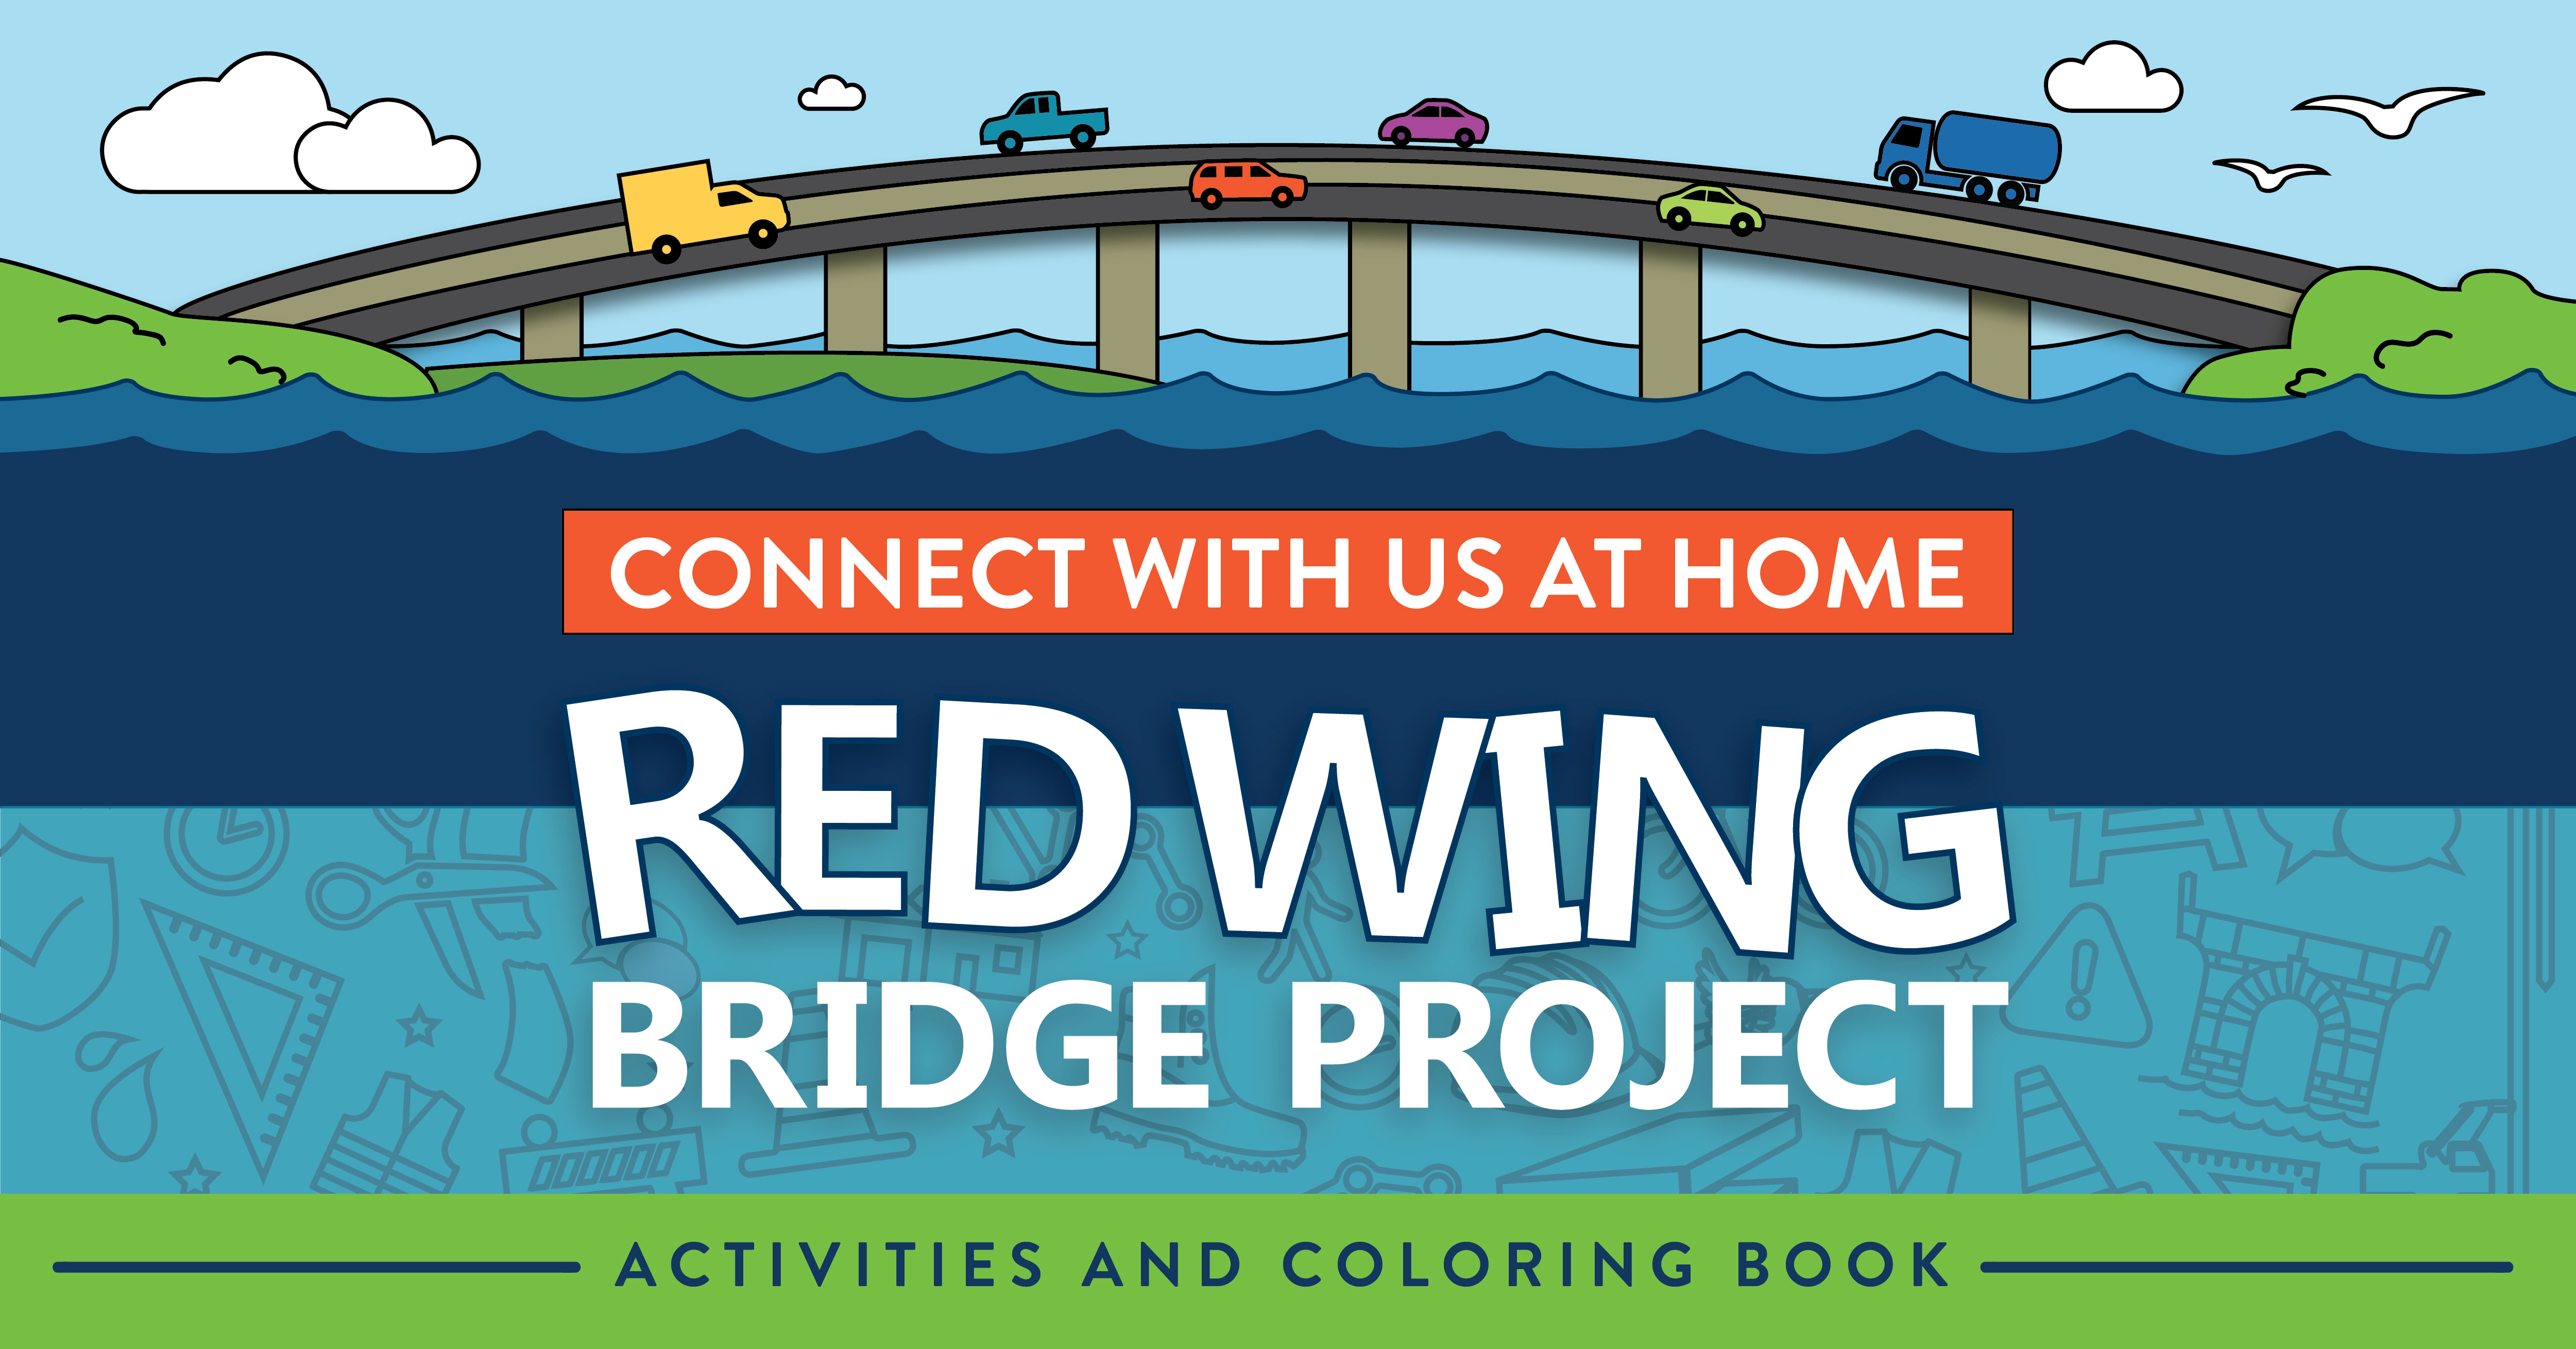 Connect with us at home: Red wing Bridge Project. Activities and Coloring Book